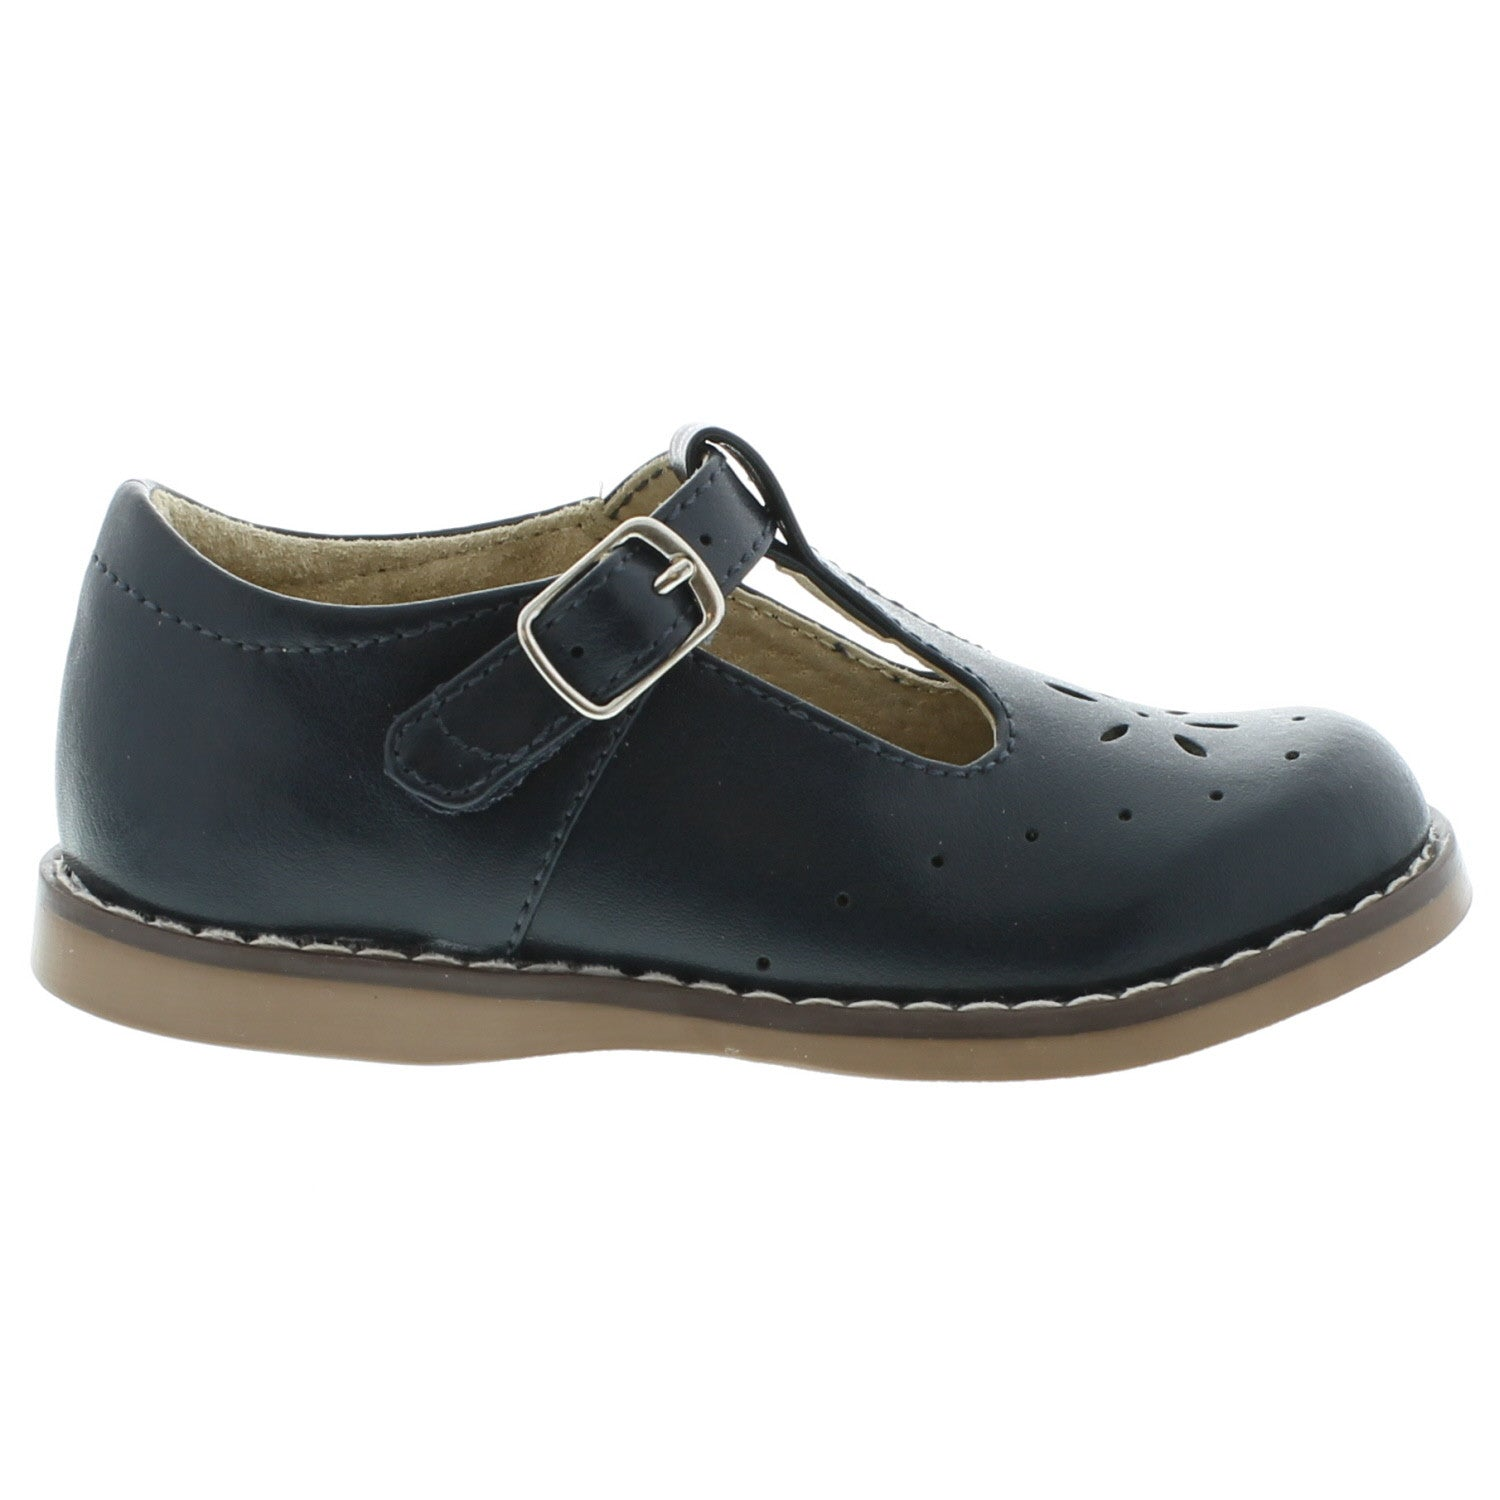 Sherry - Navy by Footmates - Ponseti's Shoes